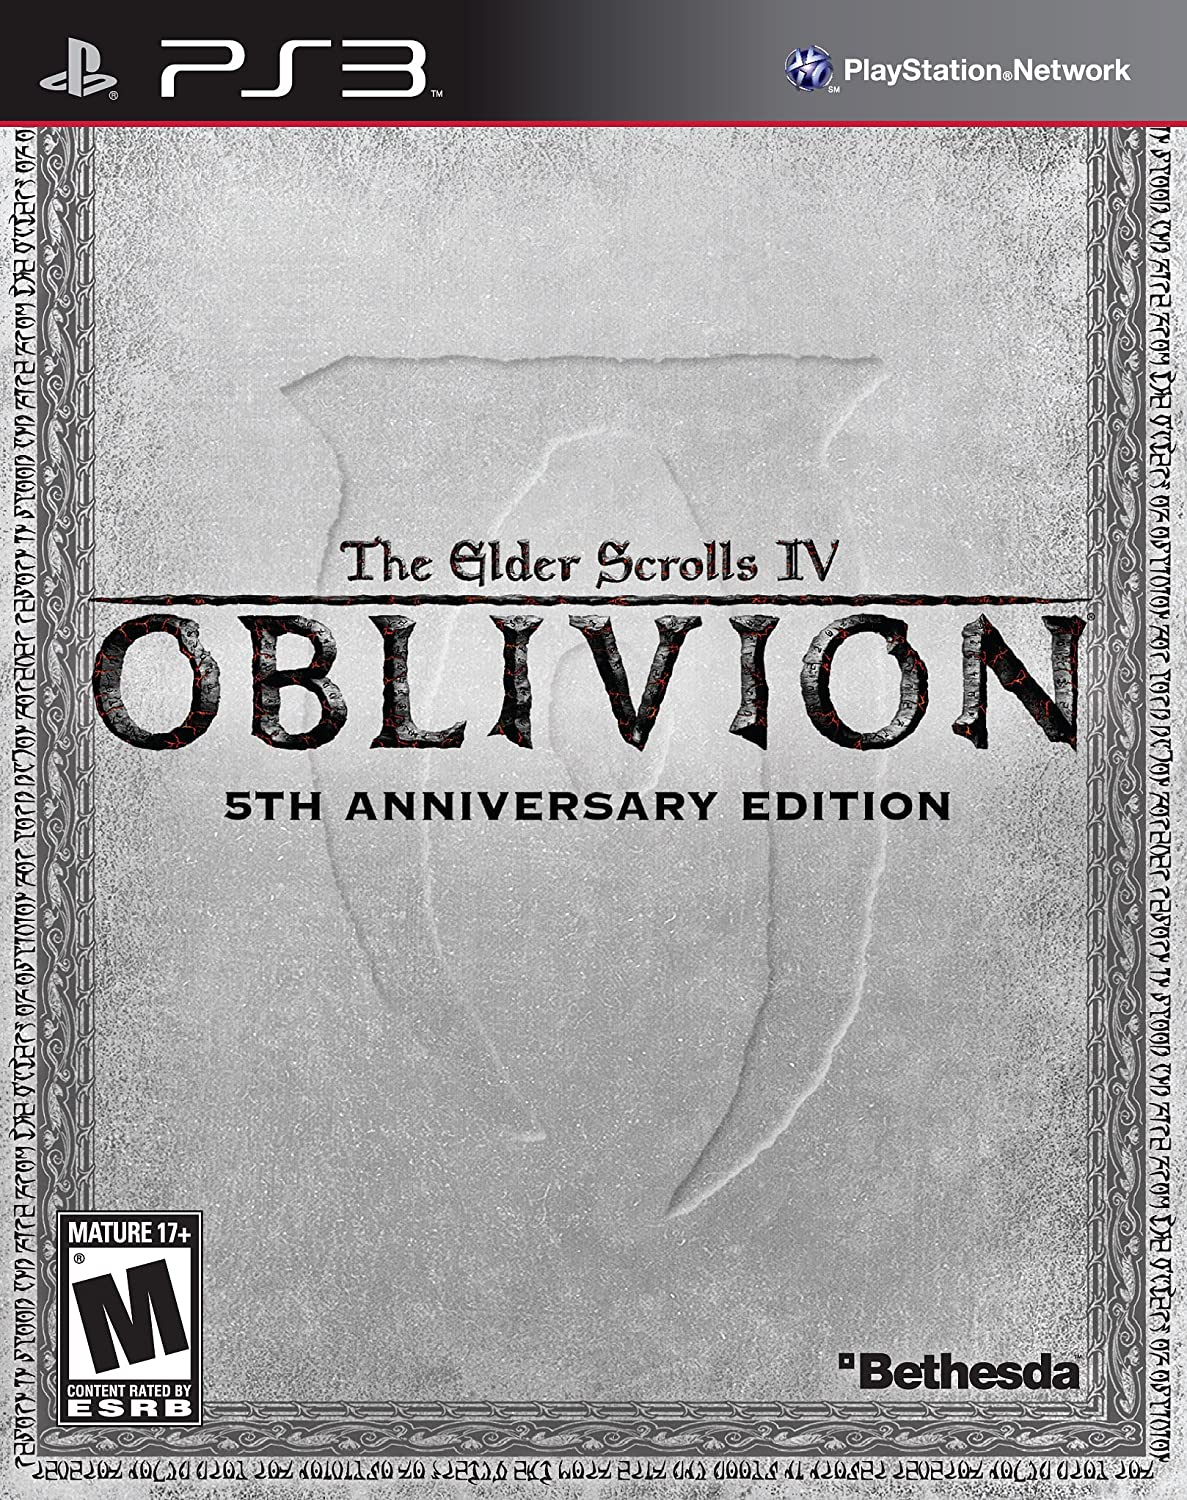 Amazon.com: The Elder Scrolls IV: Oblivion - 5th Anniversary Edition - Playstation  3: Video Games